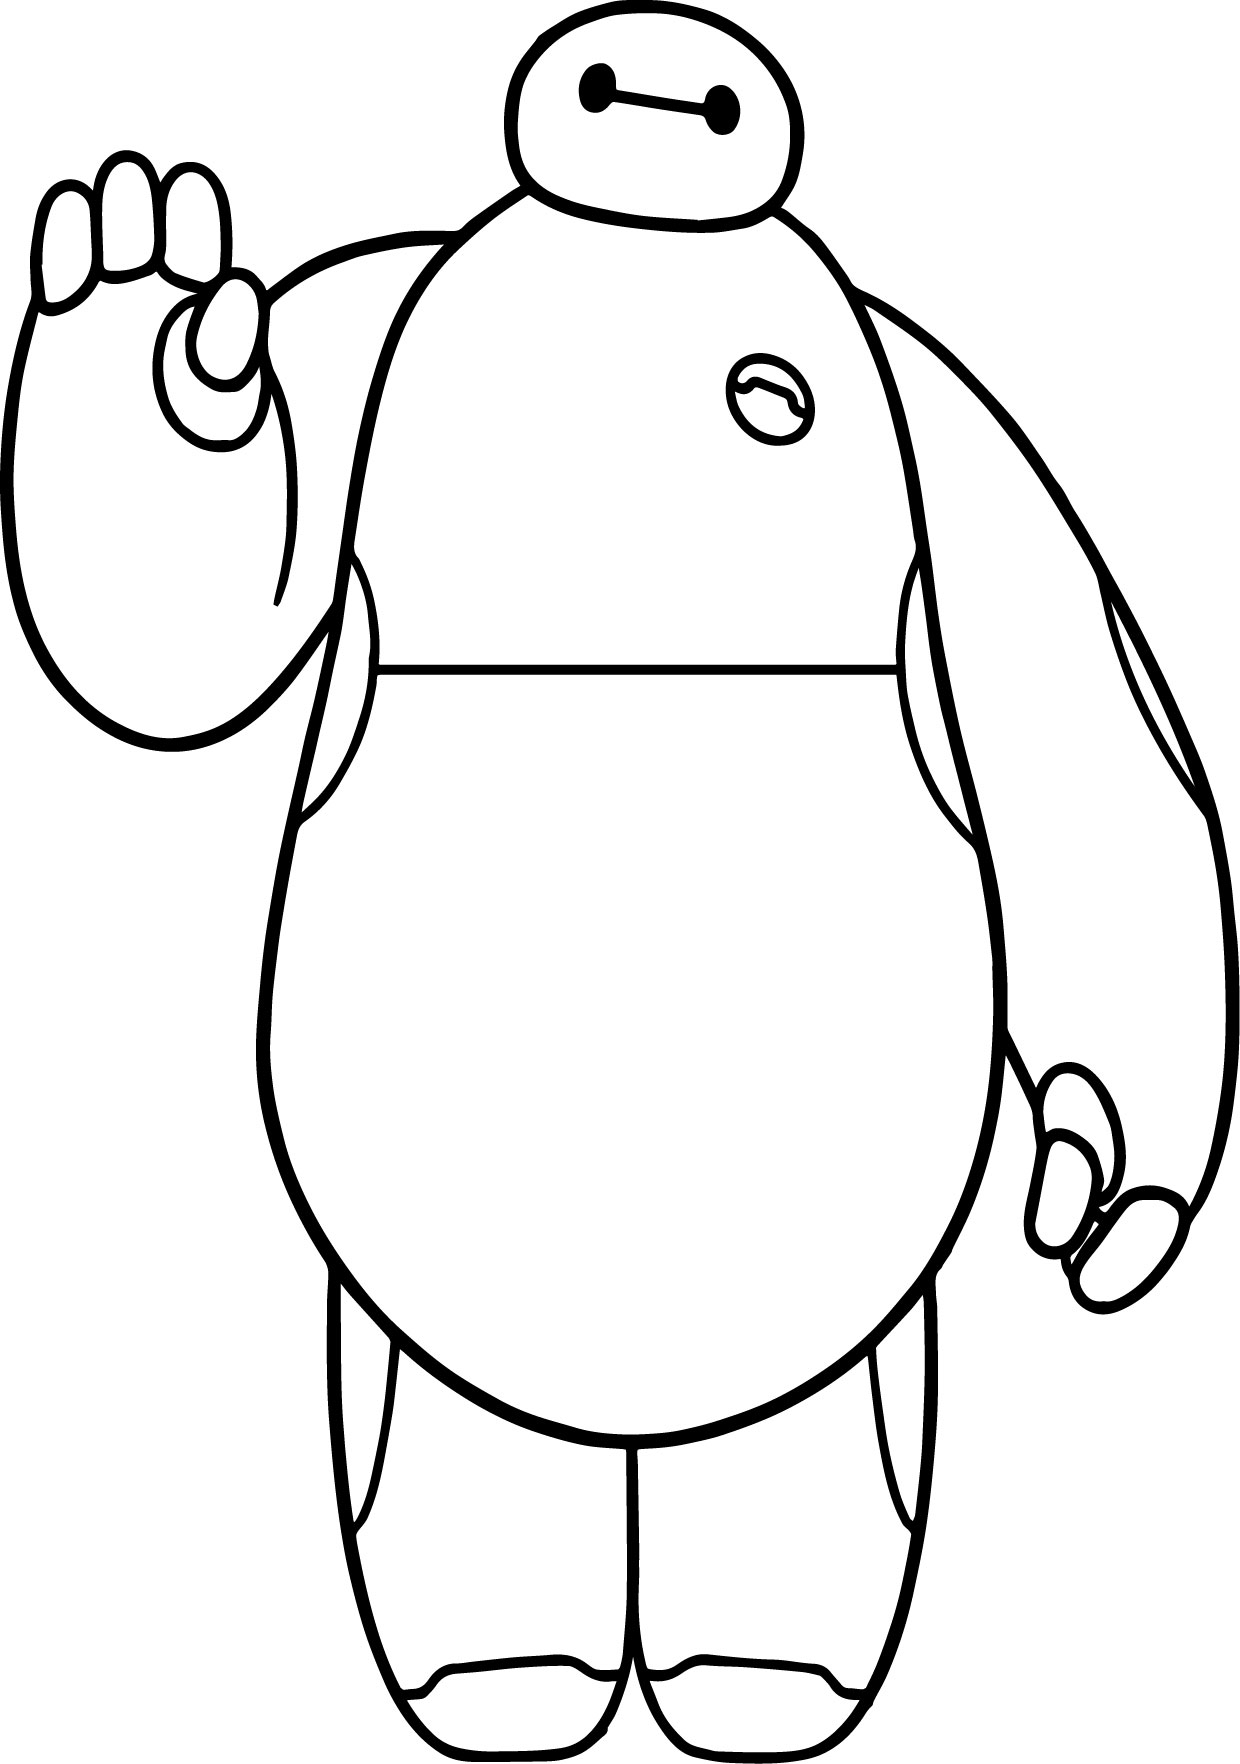 Big Hero 6 Characters Baymax Hello Coloring Page